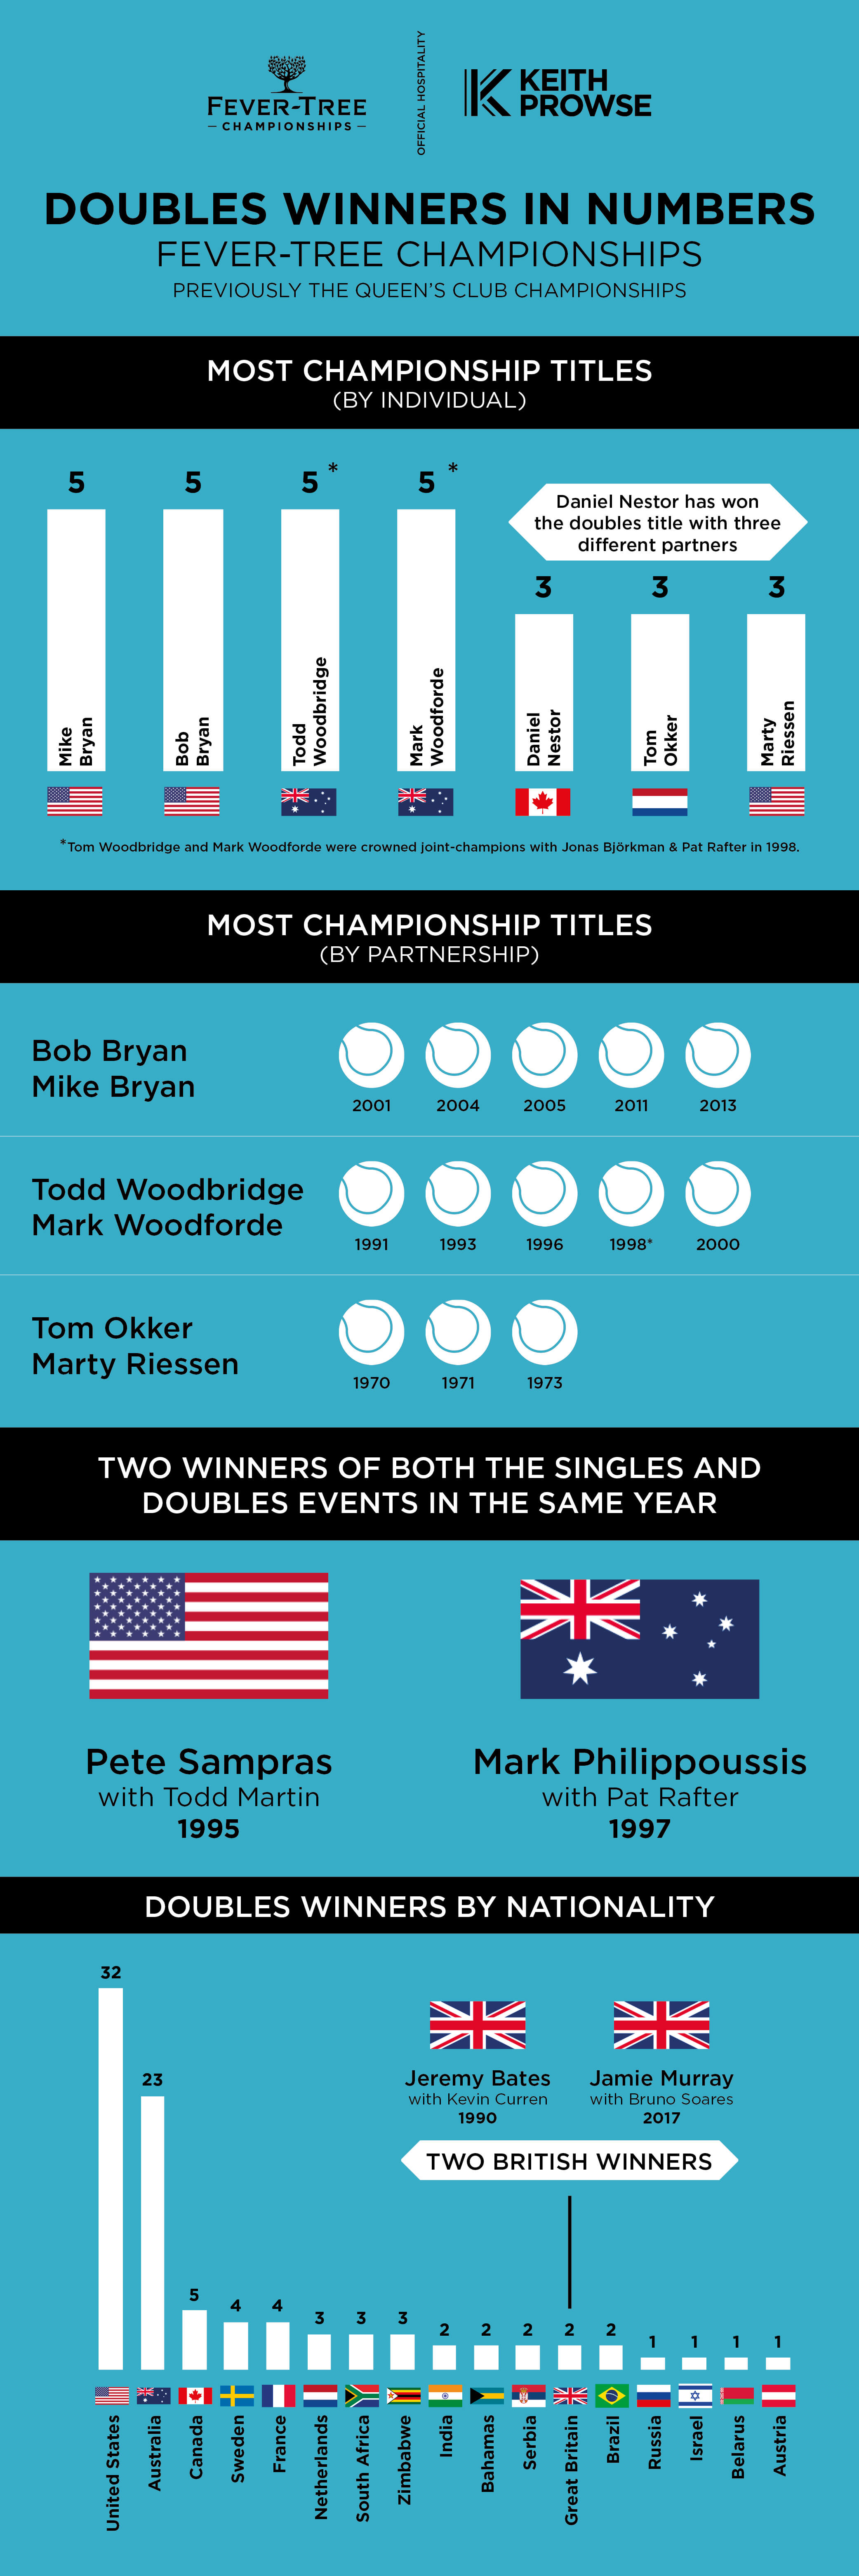 Fever-Tree Championships - Doubles Winners in Numbers